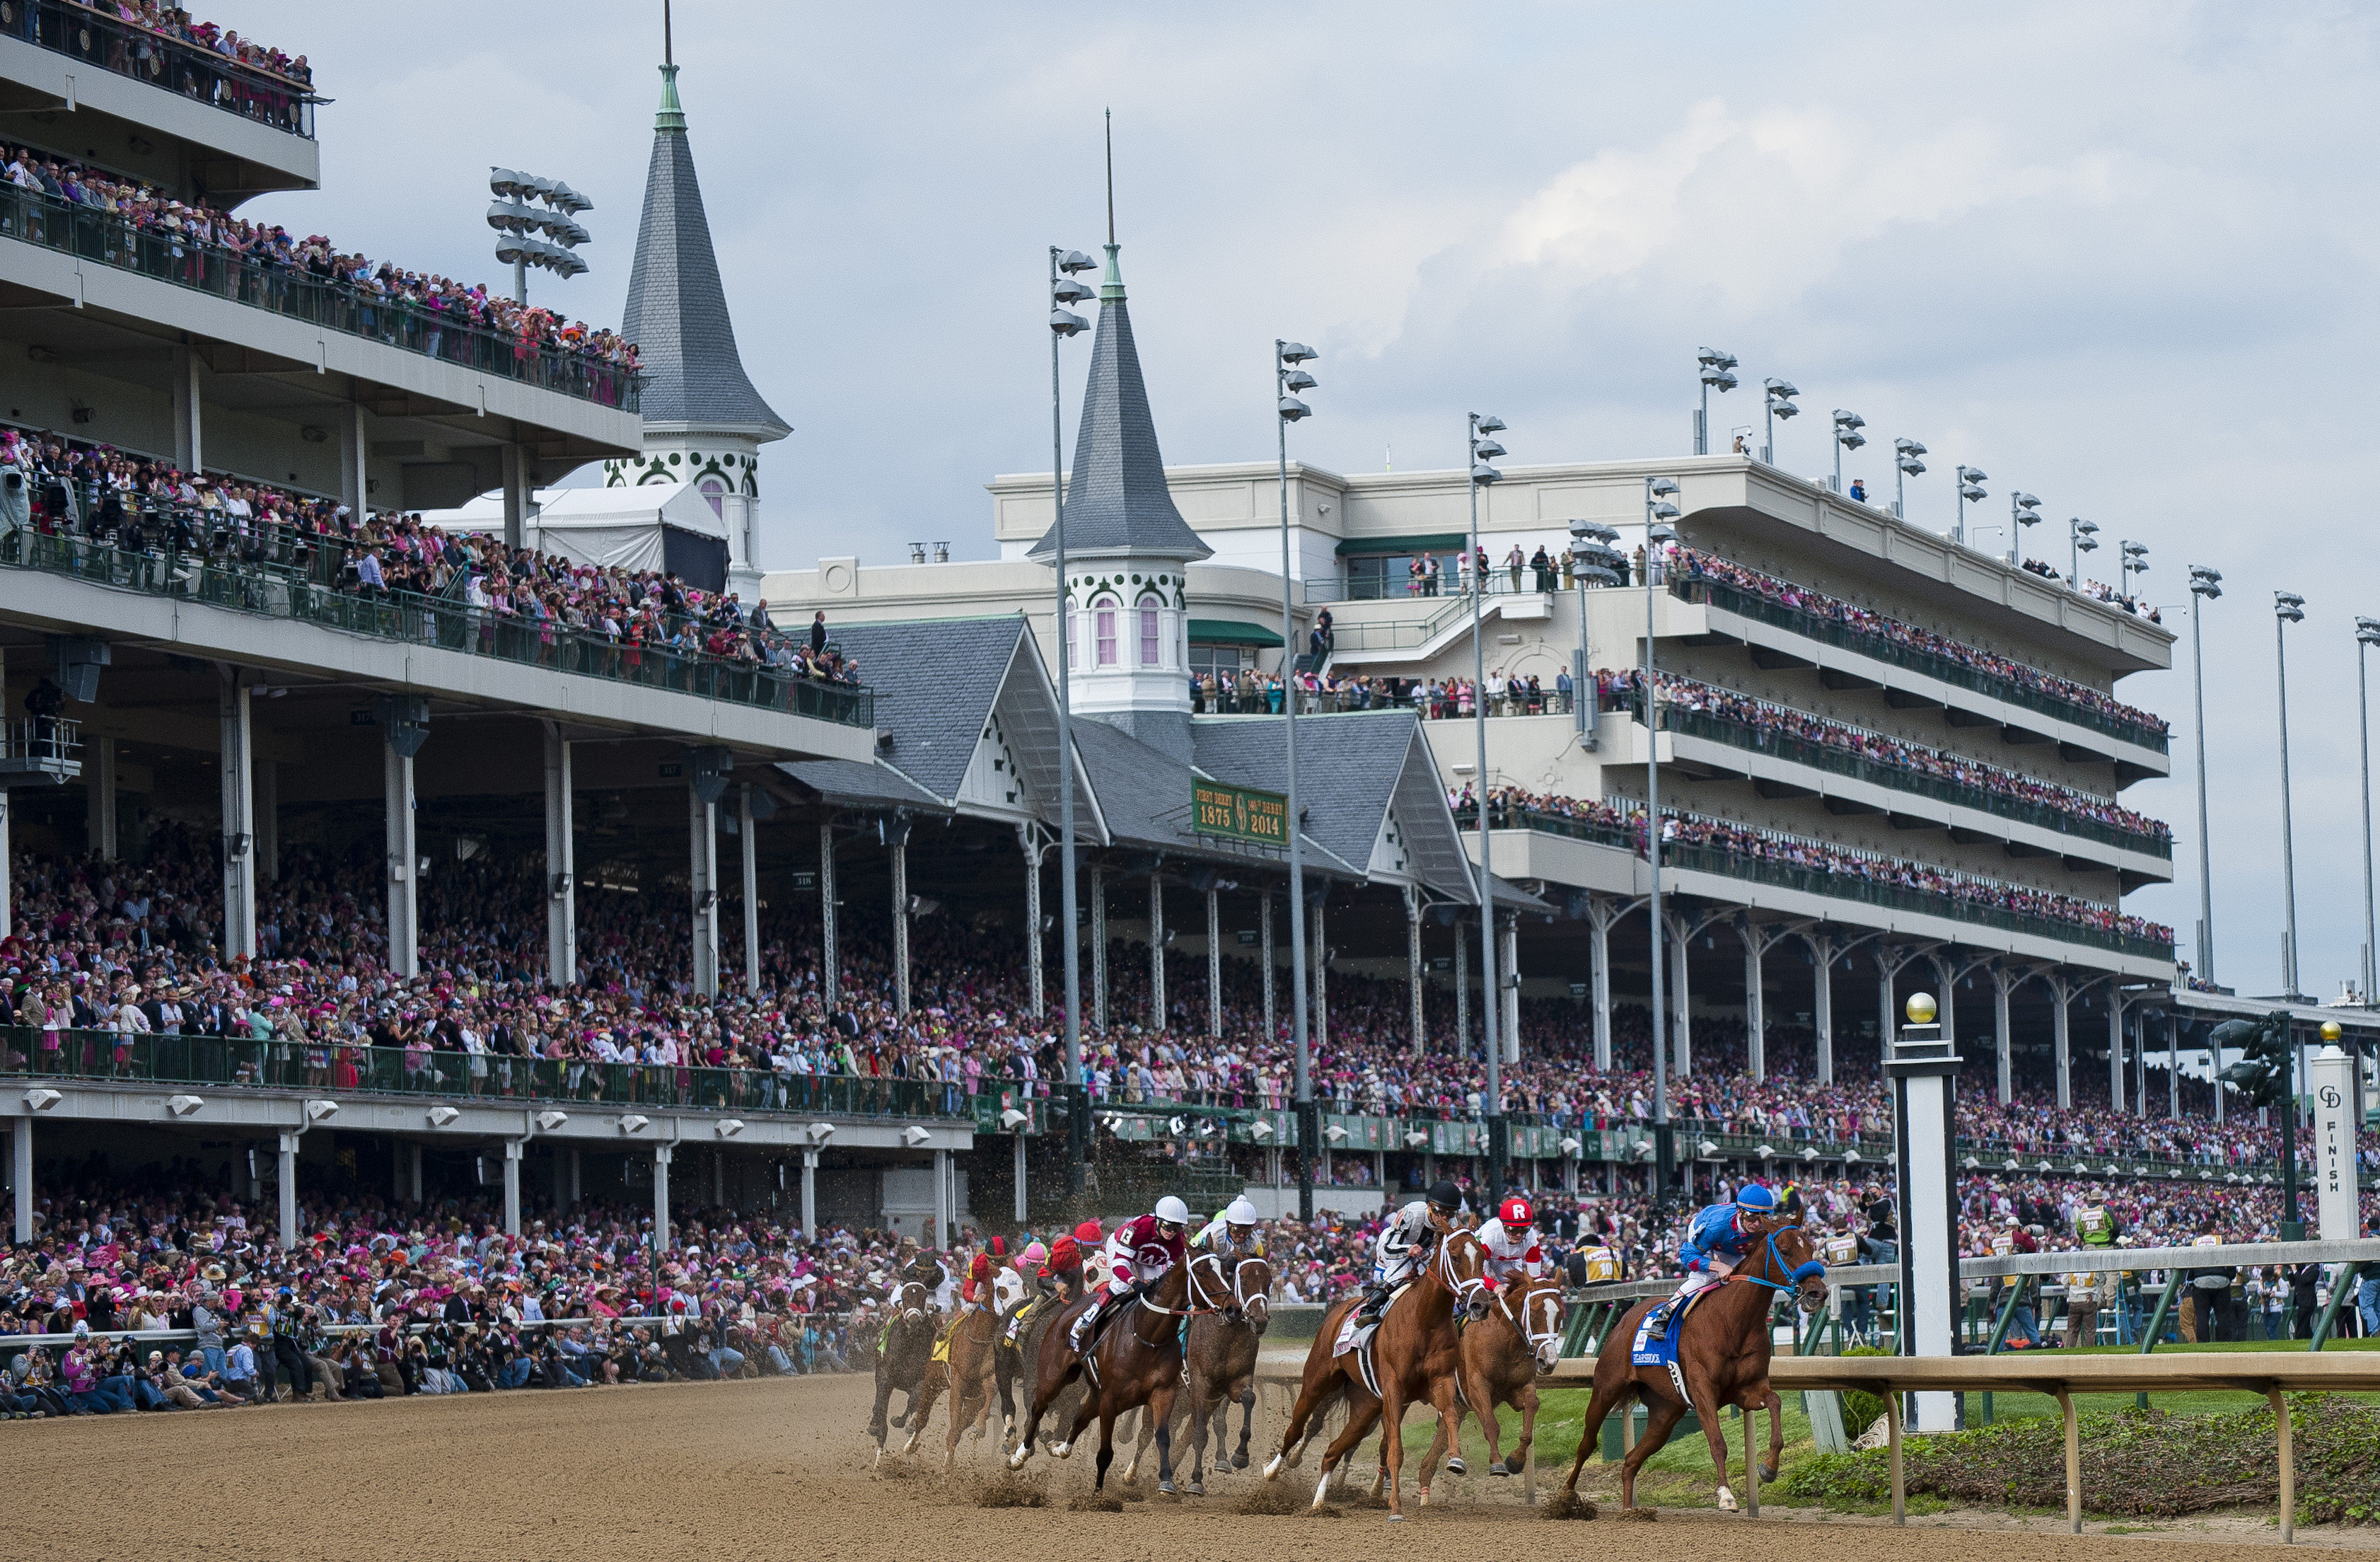 Kentucky Oaks Day at Churchill Downs in Louisville, KY on May 2, 2014.